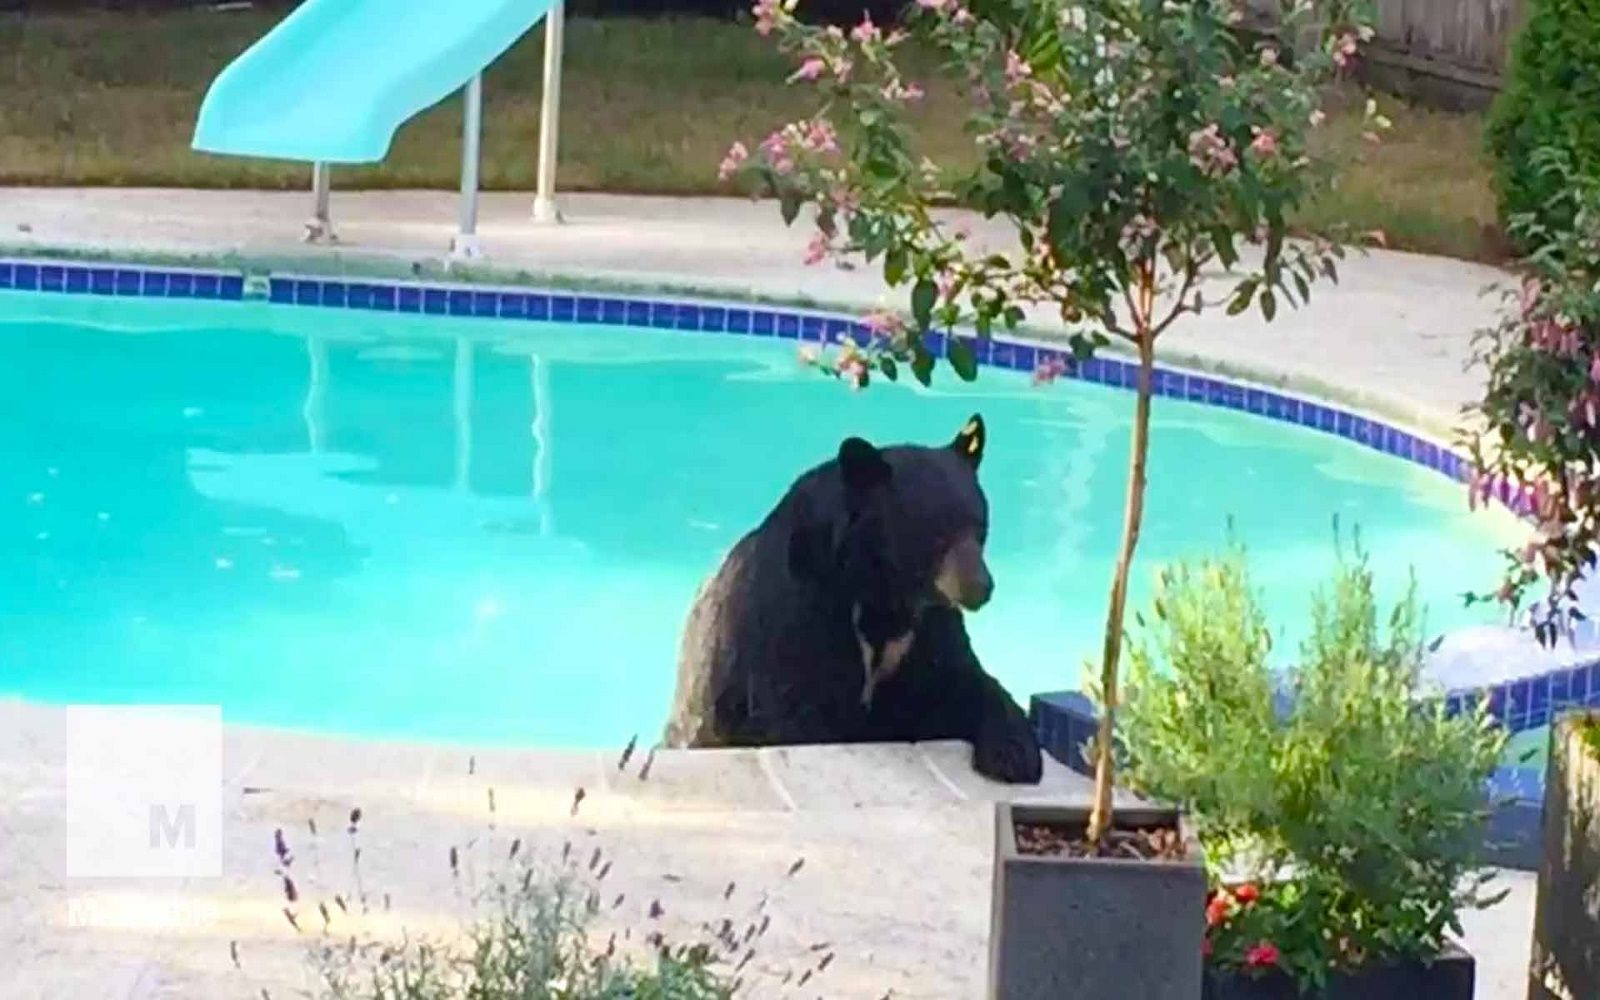 Wild Bear Takes a Break From Being